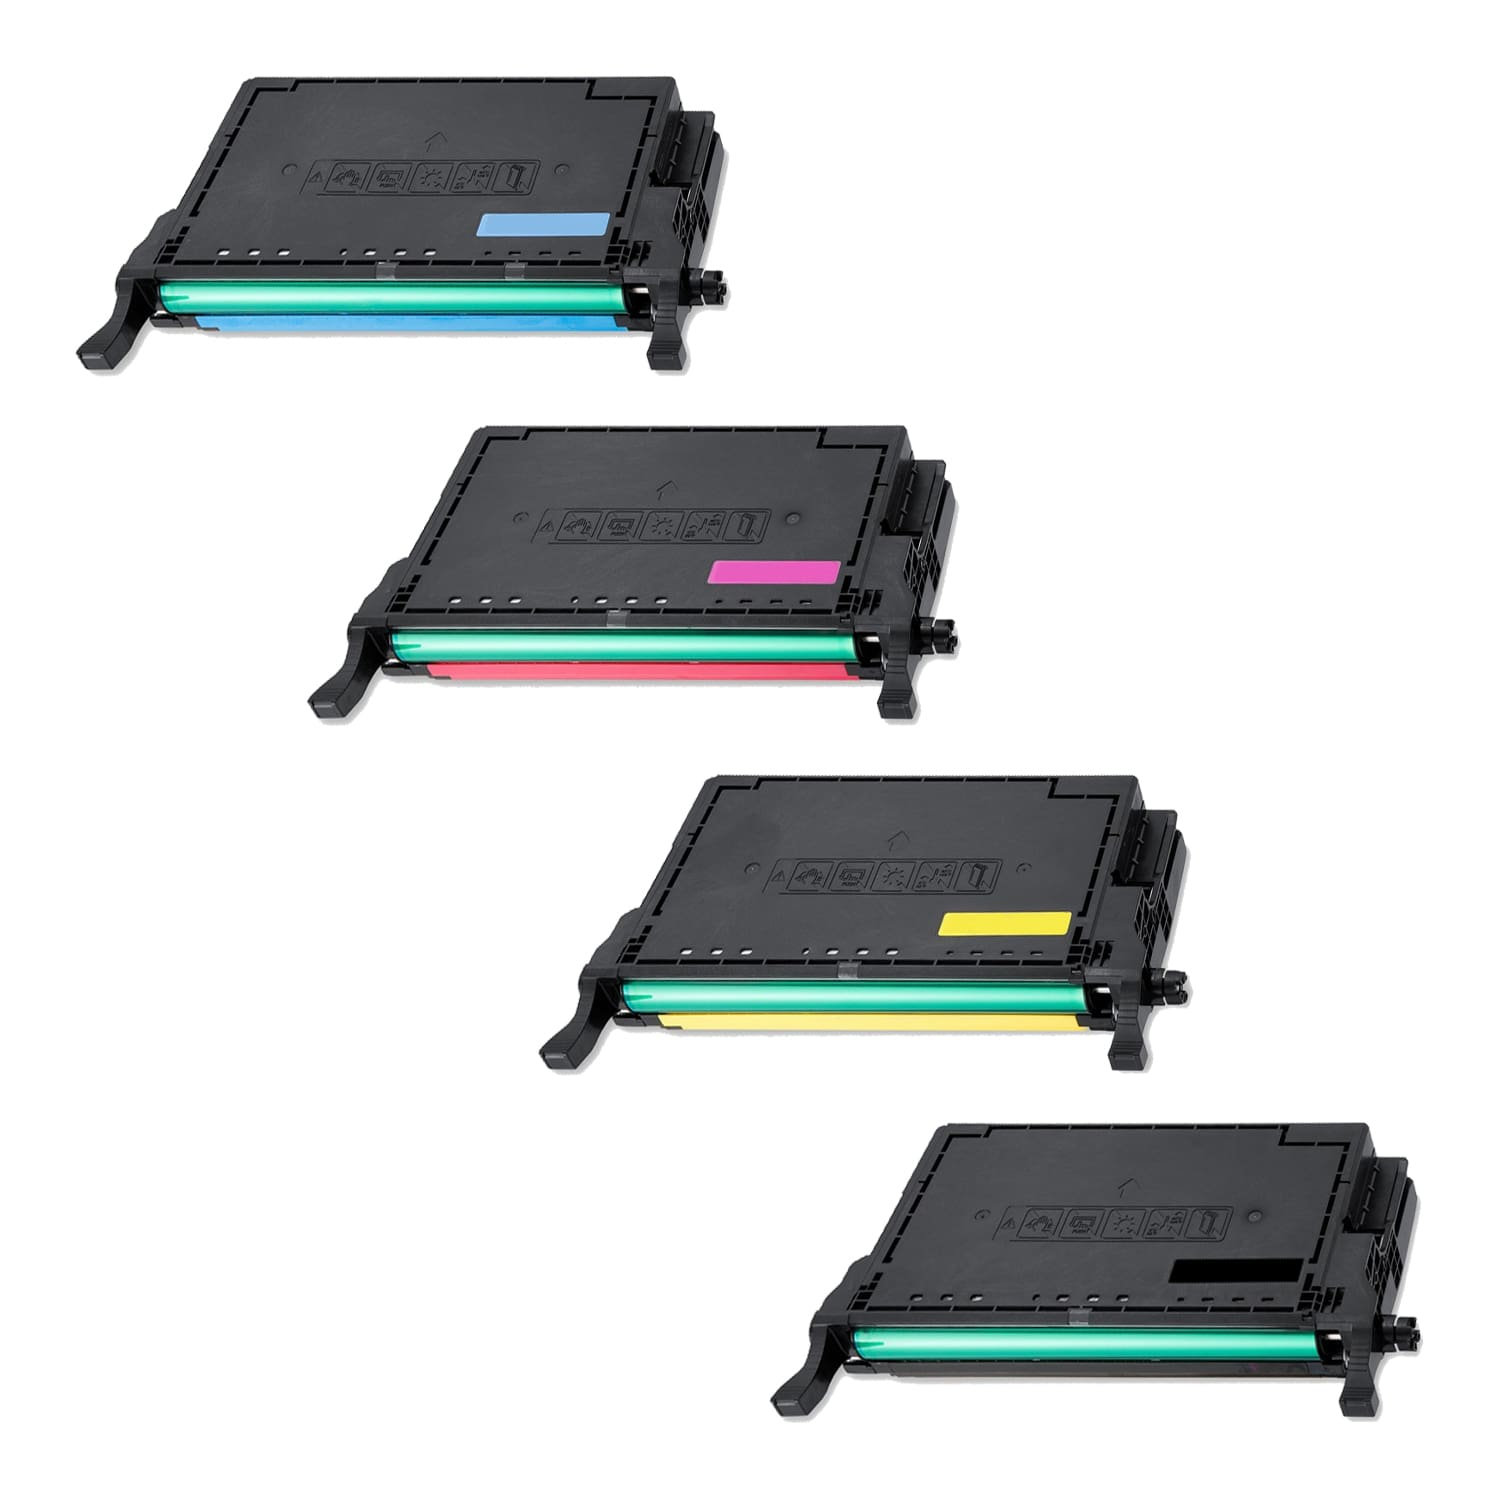 Remanufactured Samsung 508L Toner High Capacity Pack - 4 Cartridges